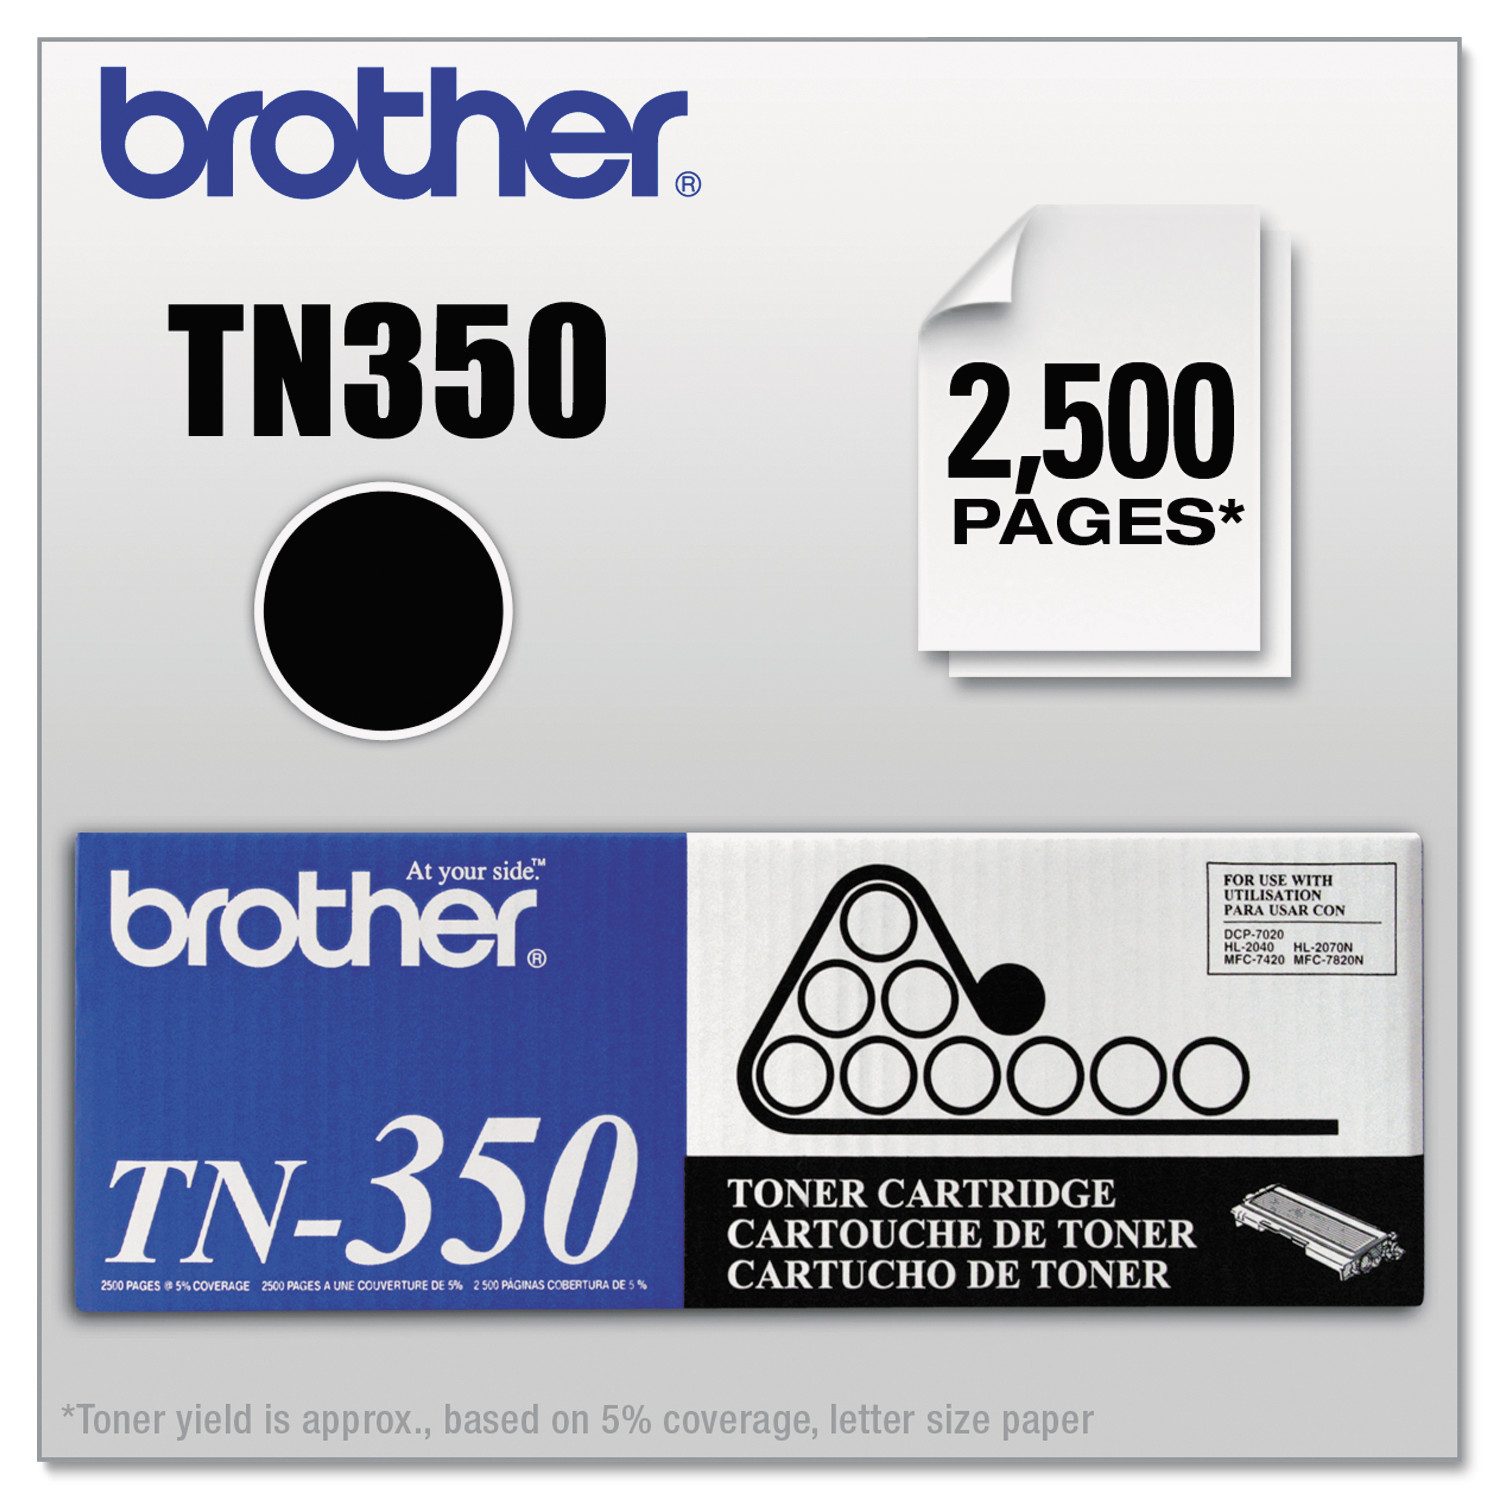 Brother TN350 Toner, Black